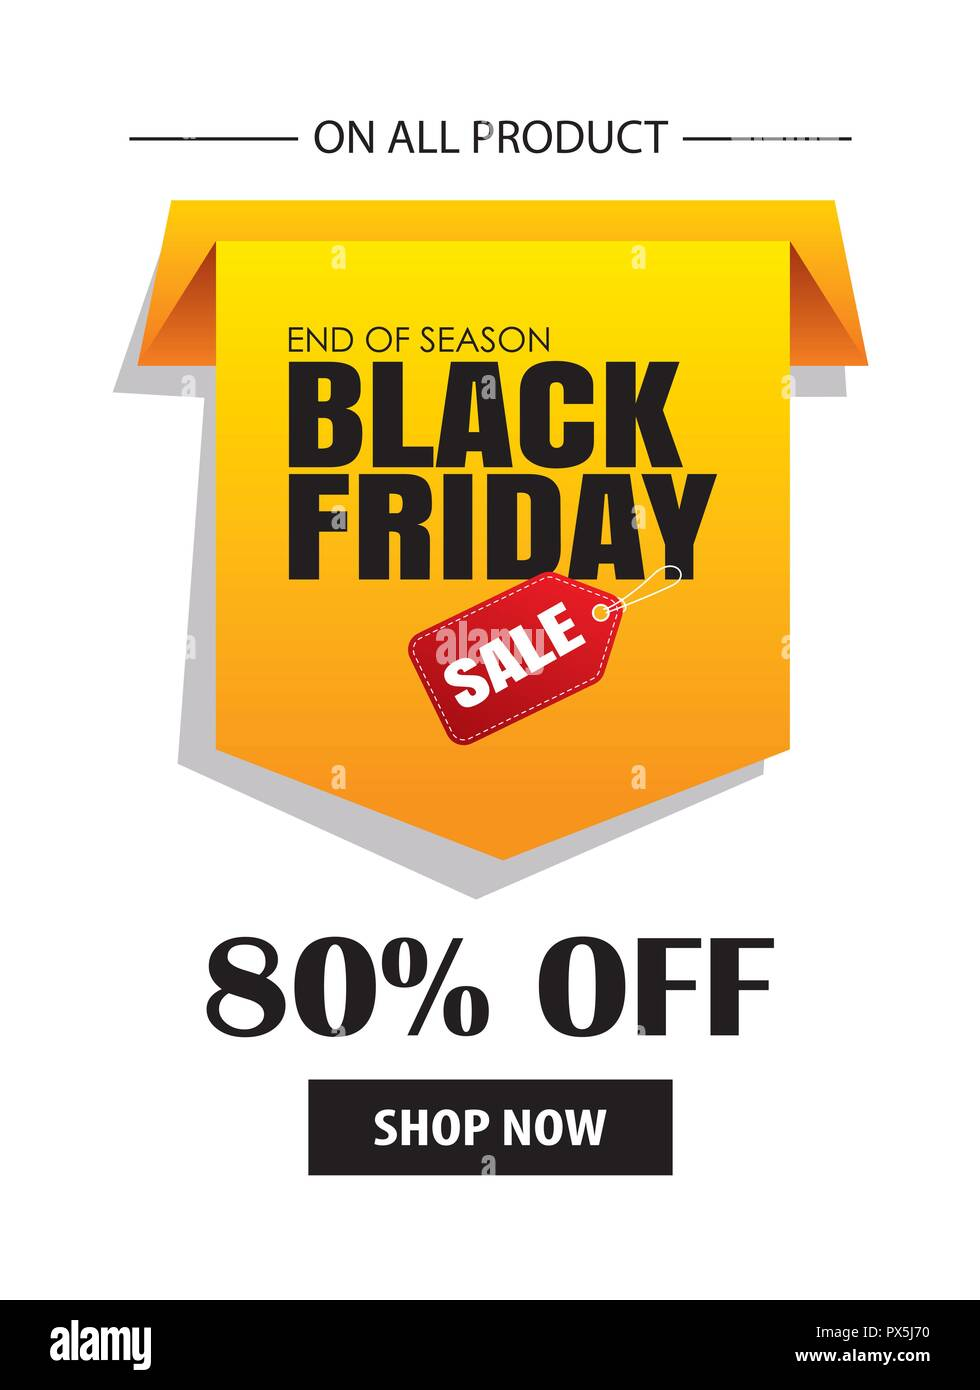 black friday sale flyer template white background with yellow tag